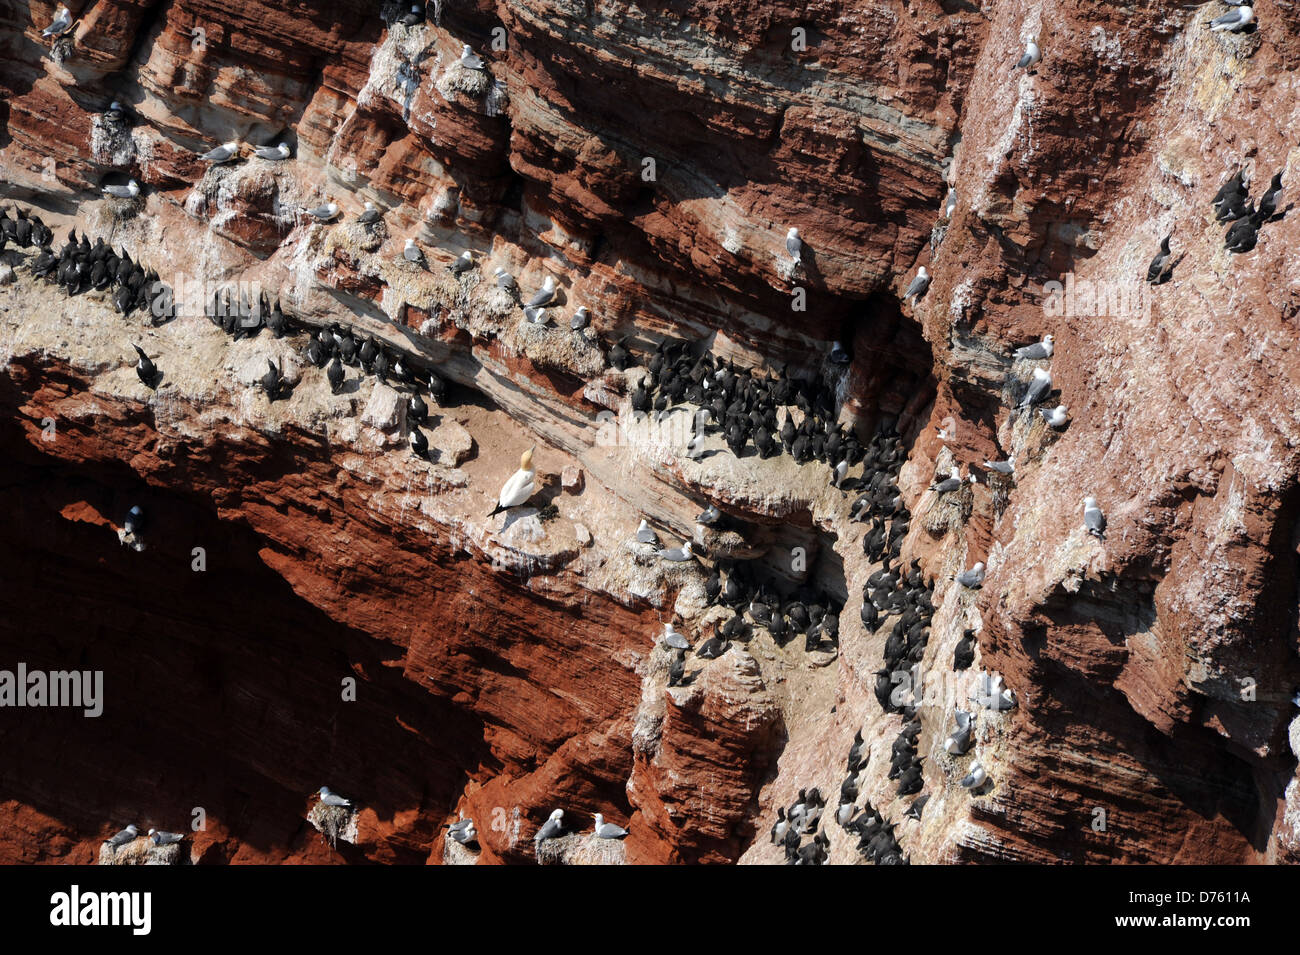 common guillemots brooding in a scarp slope - Stock Image